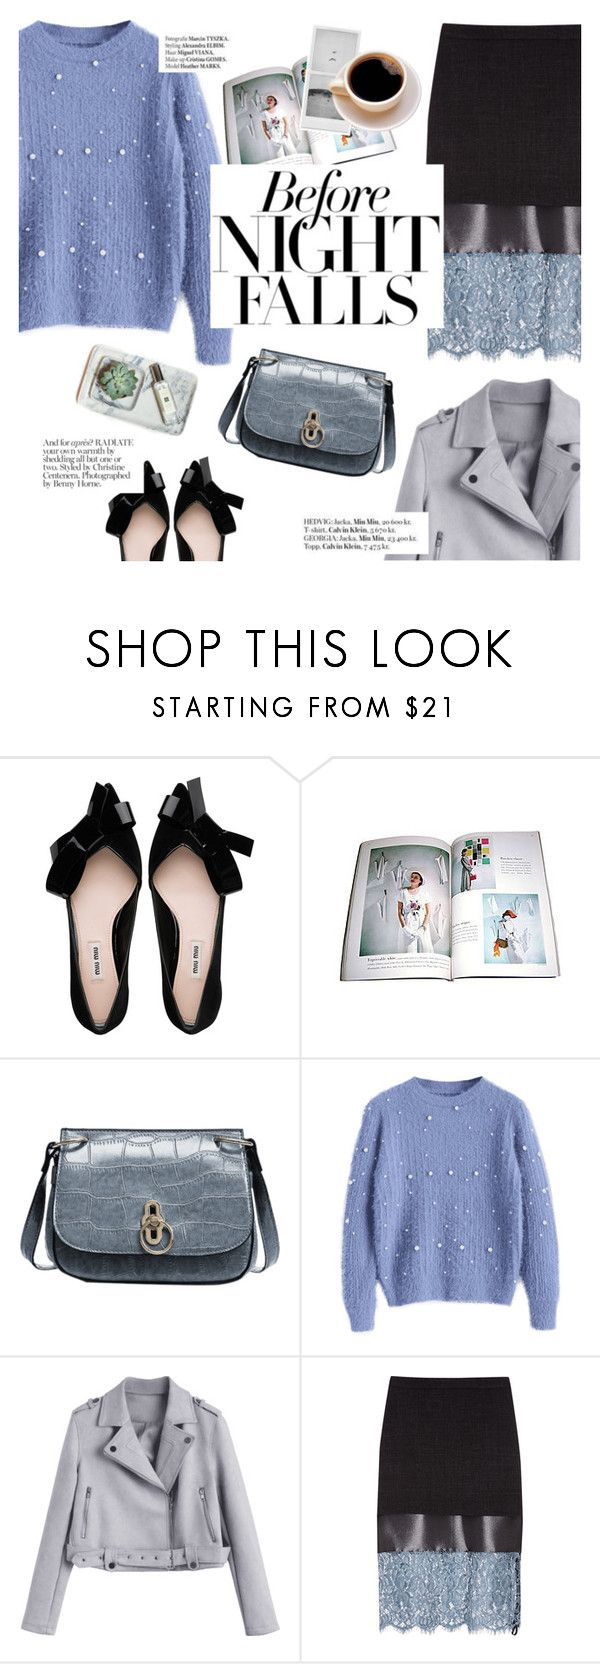 """""""Before night falls"""" by punnky ❤ liked on Polyvore featuring Topshop Unique and Haute Hippie"""